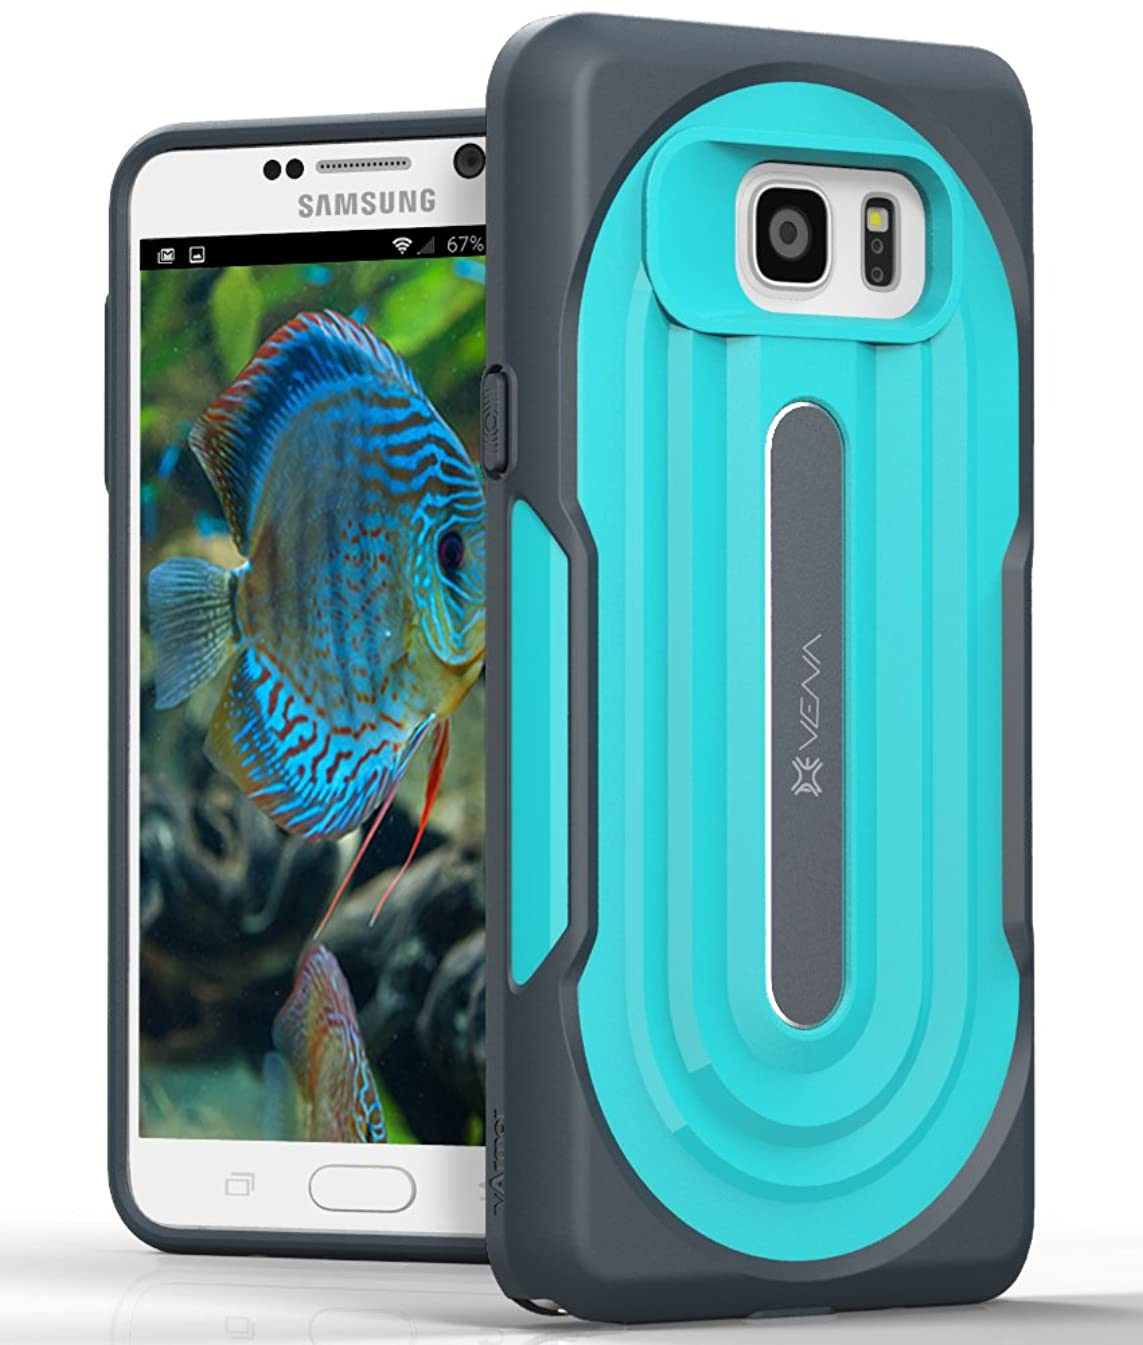 Samsung Galaxy Note 5 Rugged Case - VENA [vArmor] Ultimate Protection [Slim | Heavy Duty] Hybrid Case Cover for Samsung Galaxy Note 5 (Dark Gray/Turquoise Teal)